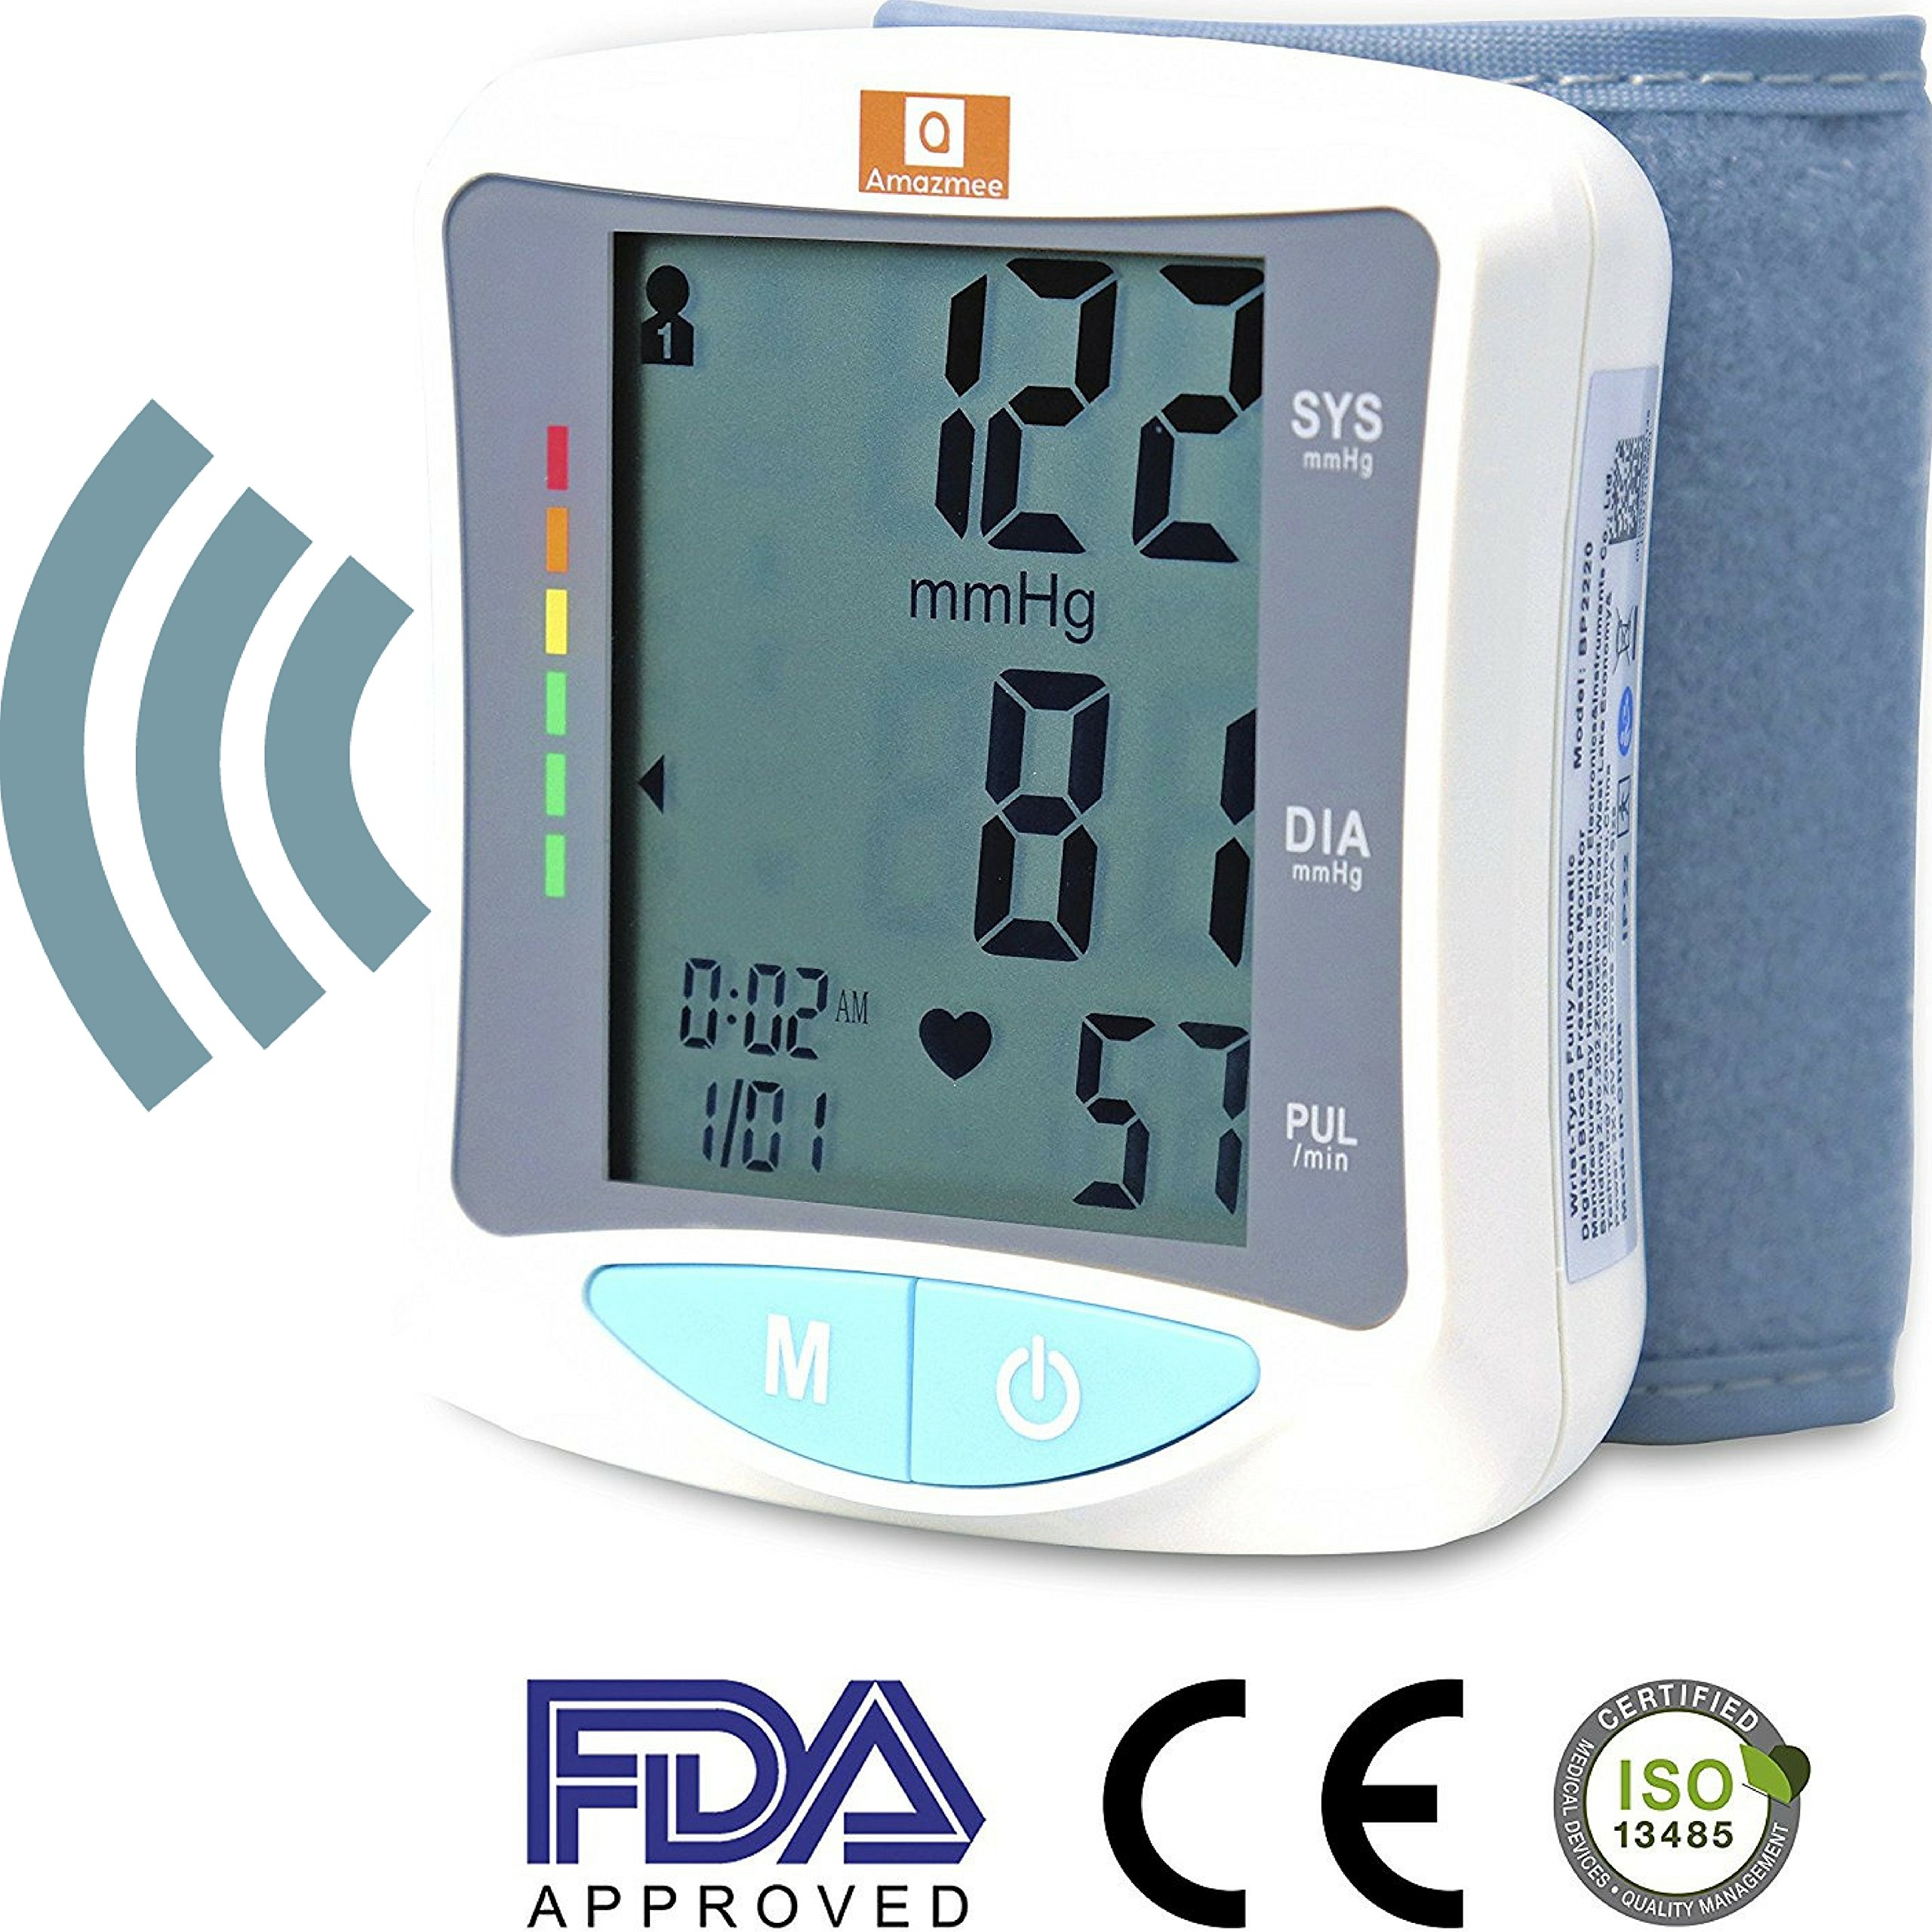 Wrist blood pressure machine FDA approved Large LCD display Fully Digital Voice read out feature Heartbeat detection Two user memory mode 120 readings Portable case large cuff size fits all